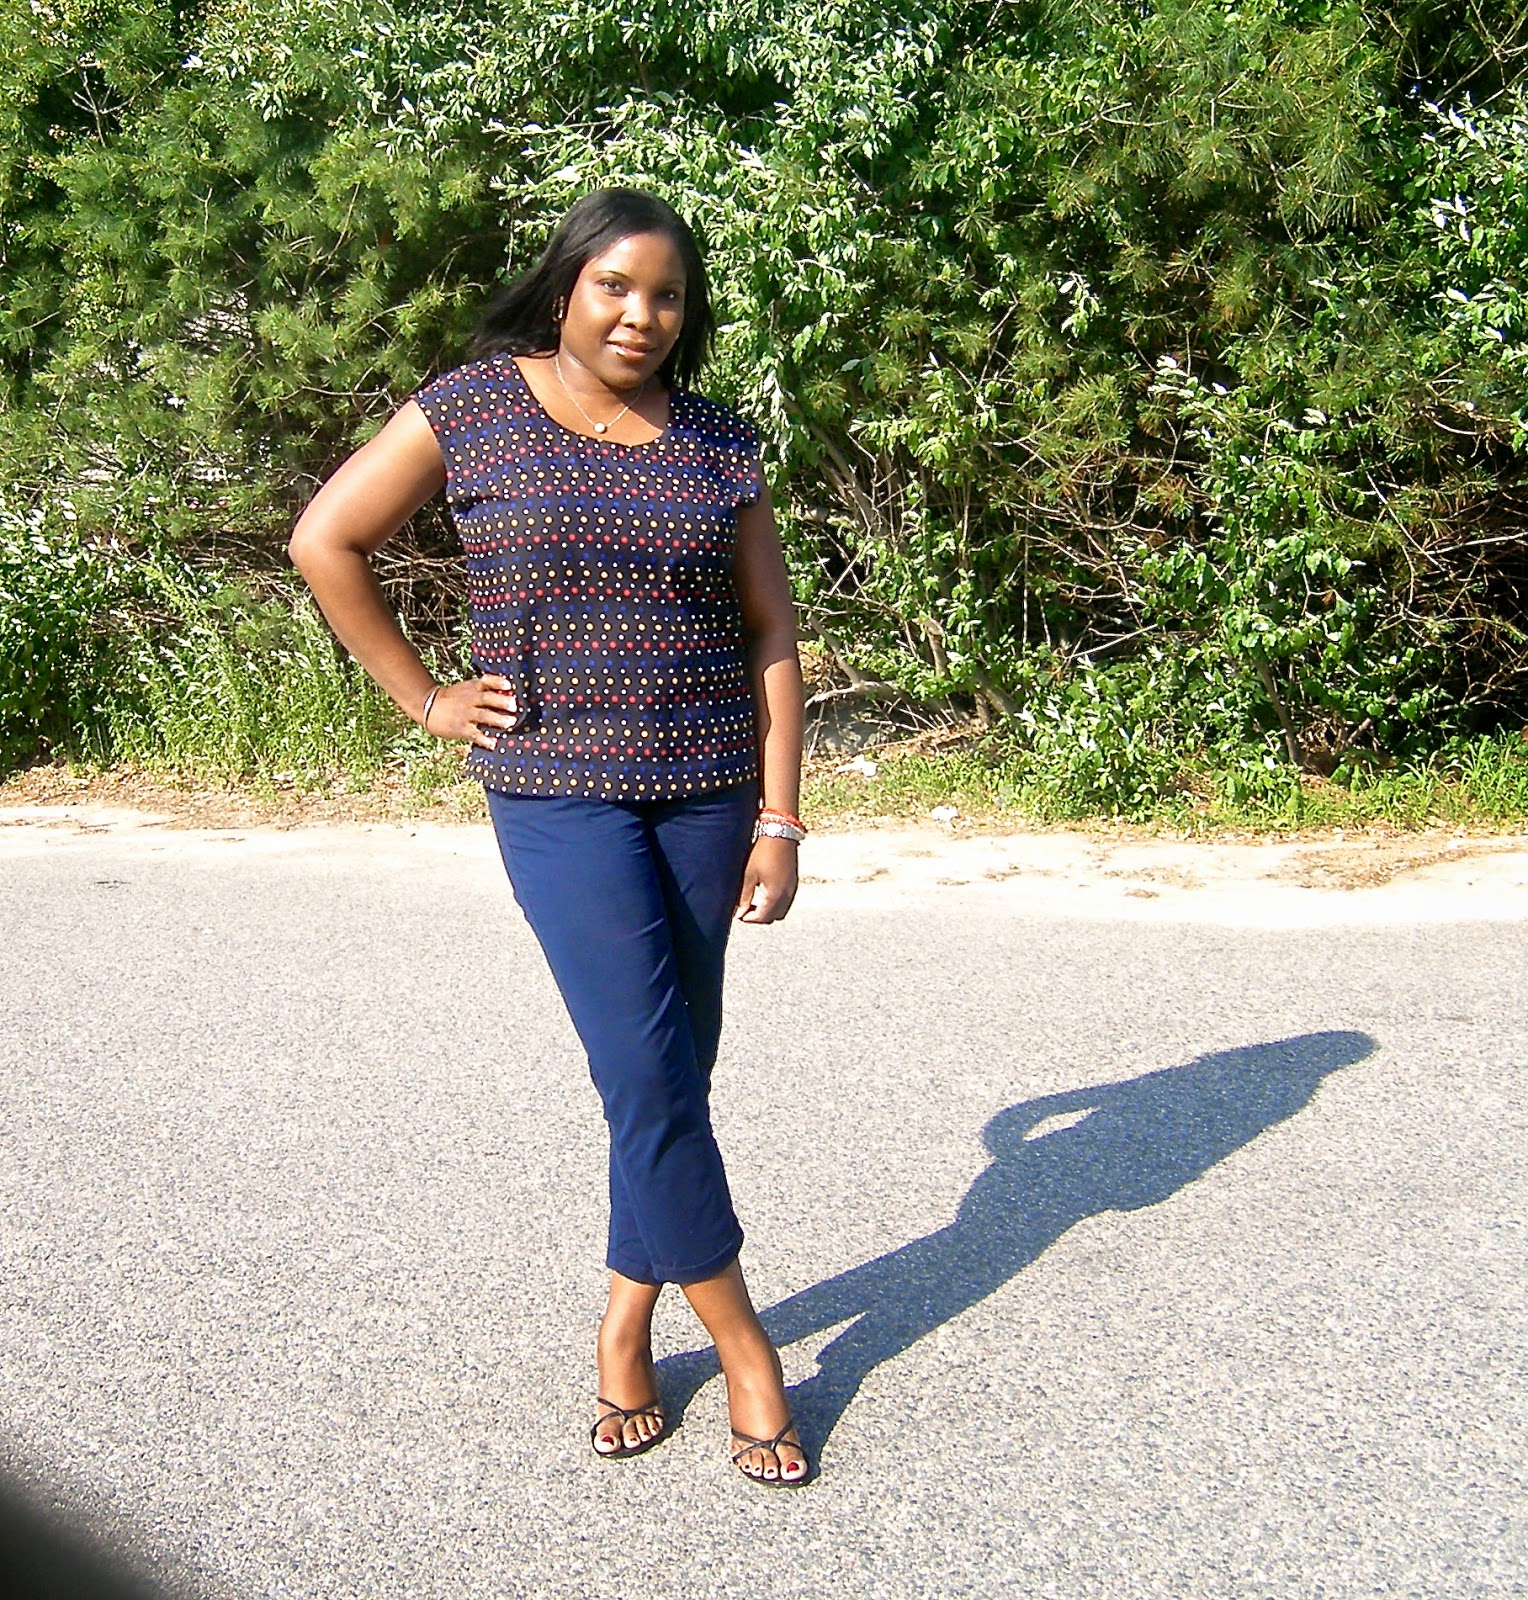 macys top, Old Navy Boyfriend khaki, kitten heeled sandals